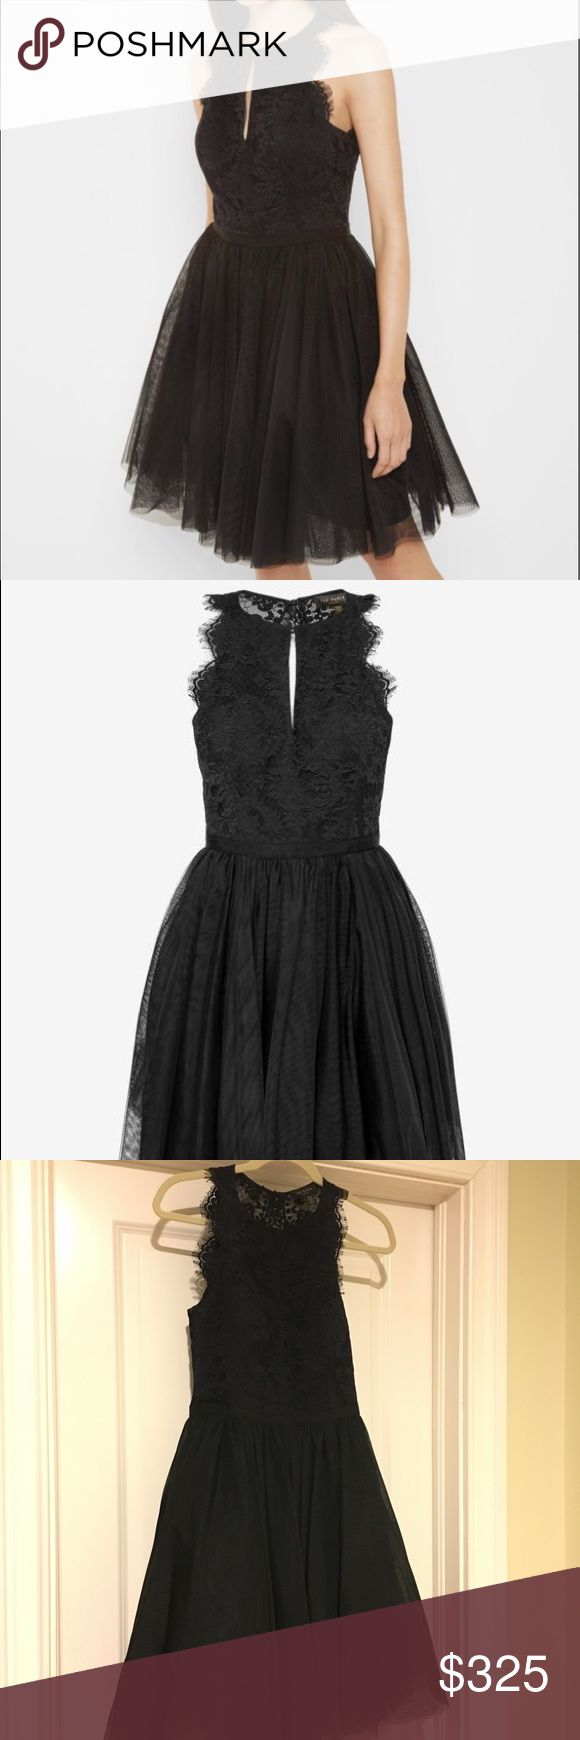 Ted Baker Black Tulle and Lace dress SZ 2 Worn once just for a photoshoot - Like New Condition. Beautiful black dress with lace top and tulle skirt. Has a elegant open back and built in bra. Perfect for your next holiday party. Paid $459 for it at Bloomingdales. My loss your gain! Ted Baker Dresses